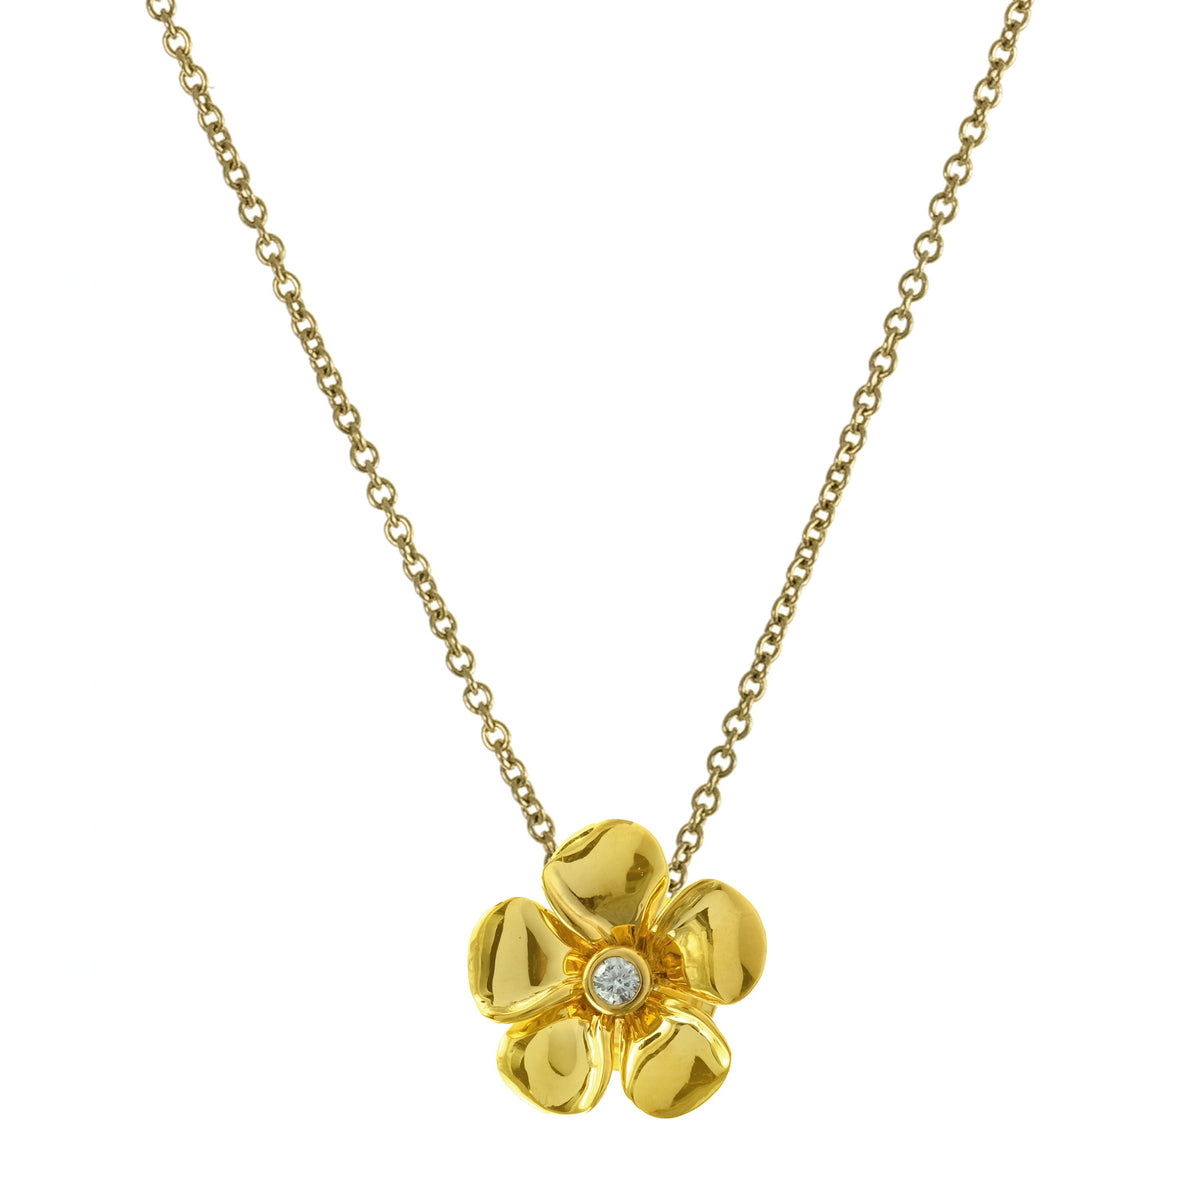 Diamond Kalachuchi Necklace with Chain, Small, Shiny Finish (available in yellow, white, and rose gold)